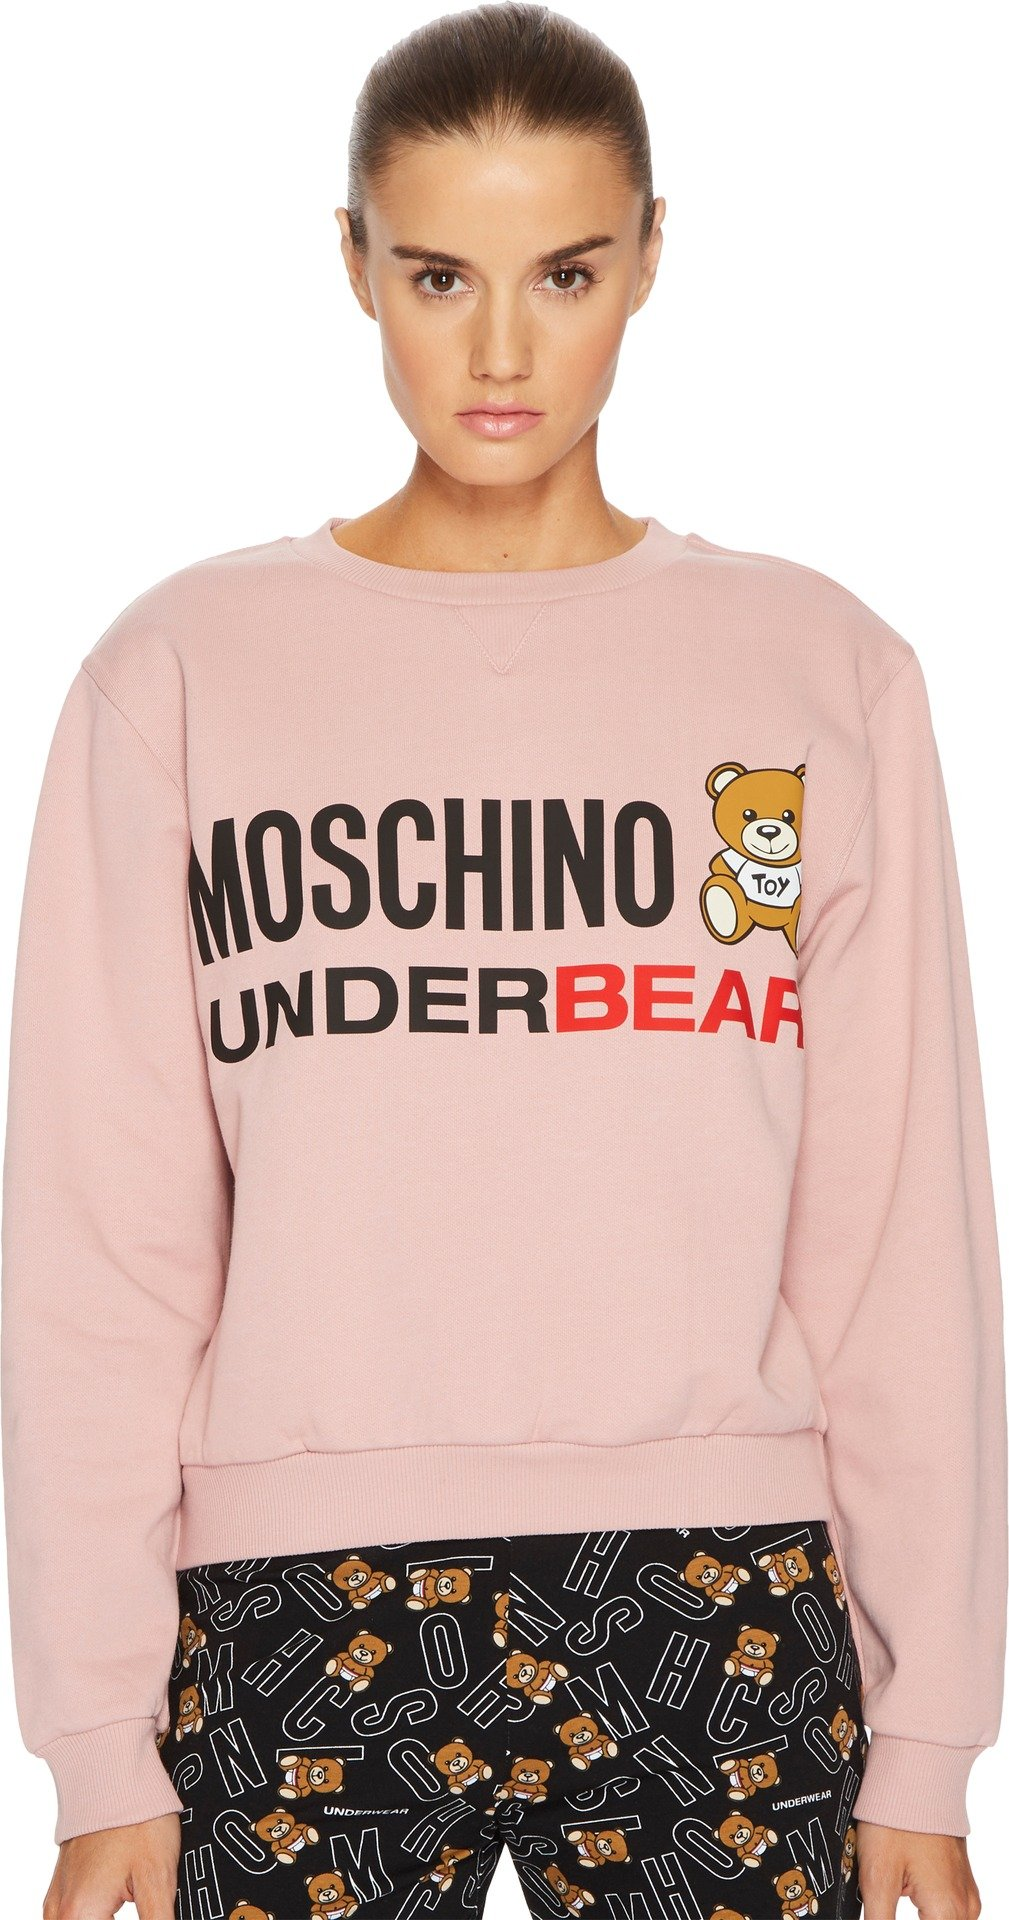 MOSCHINO Women's Cotton Fleece Long Sleeve Sweatshirt Pink Small